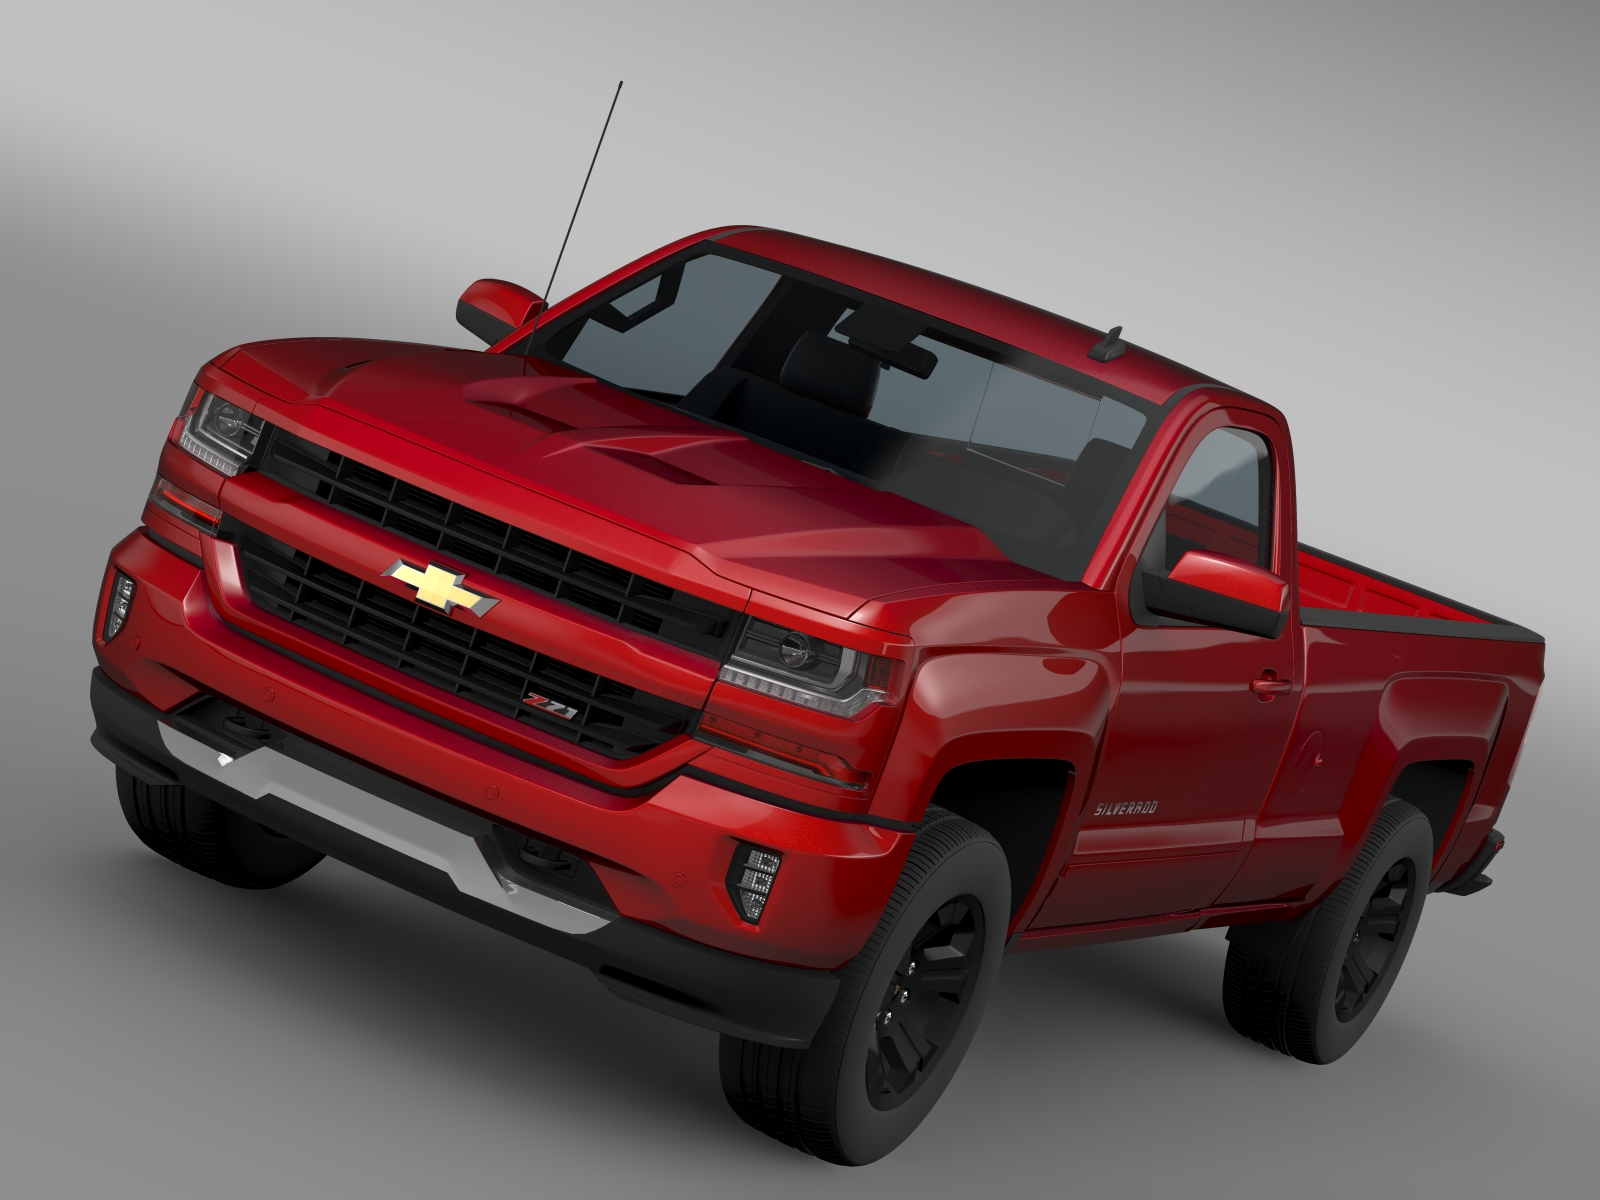 Chevrolet Silverado LT Z71 Regular Cab GMTK2 Long 3d model 3ds max fbx c4d lwo lws lw ma mb  obj 219021